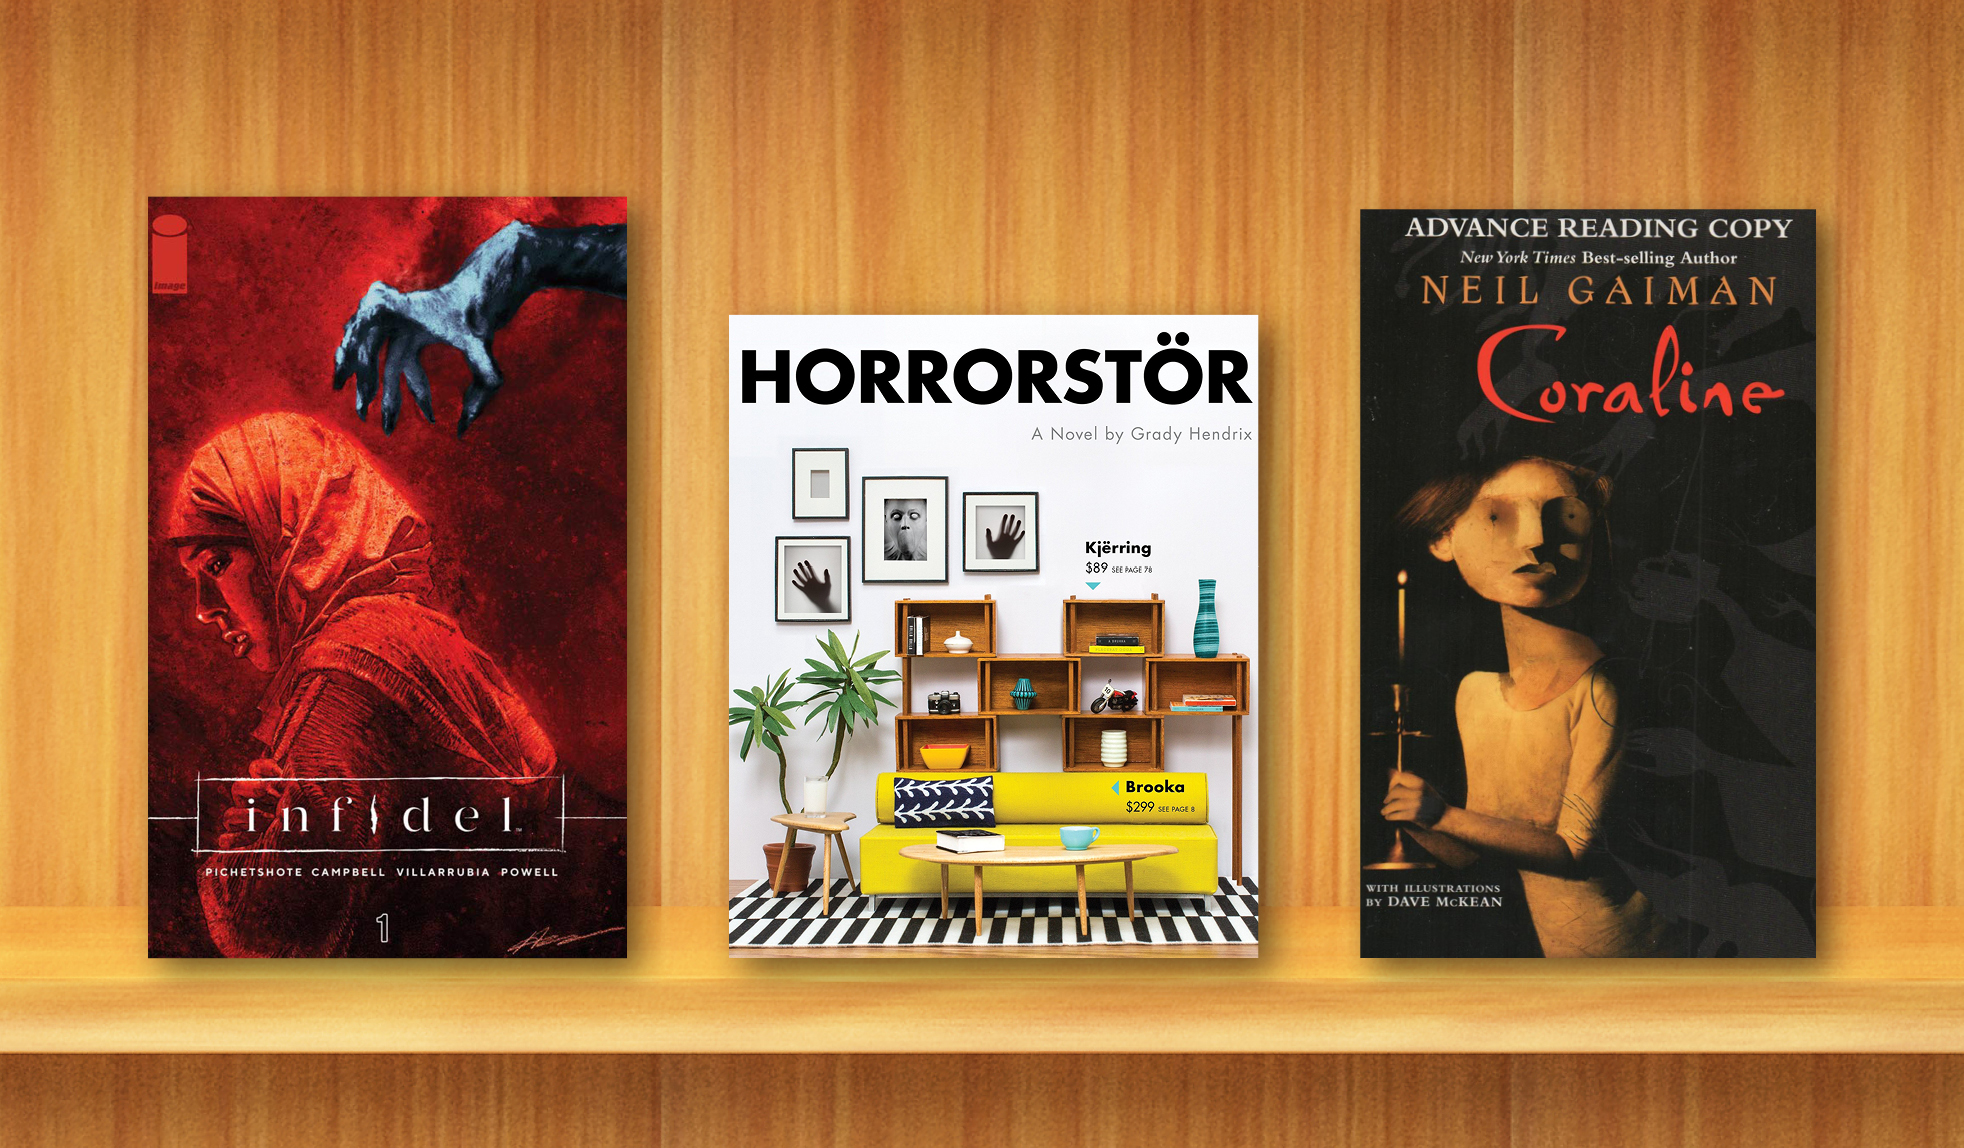 We asked our librarians to share their favorite terrifying tales with us. Here are their recommendations!